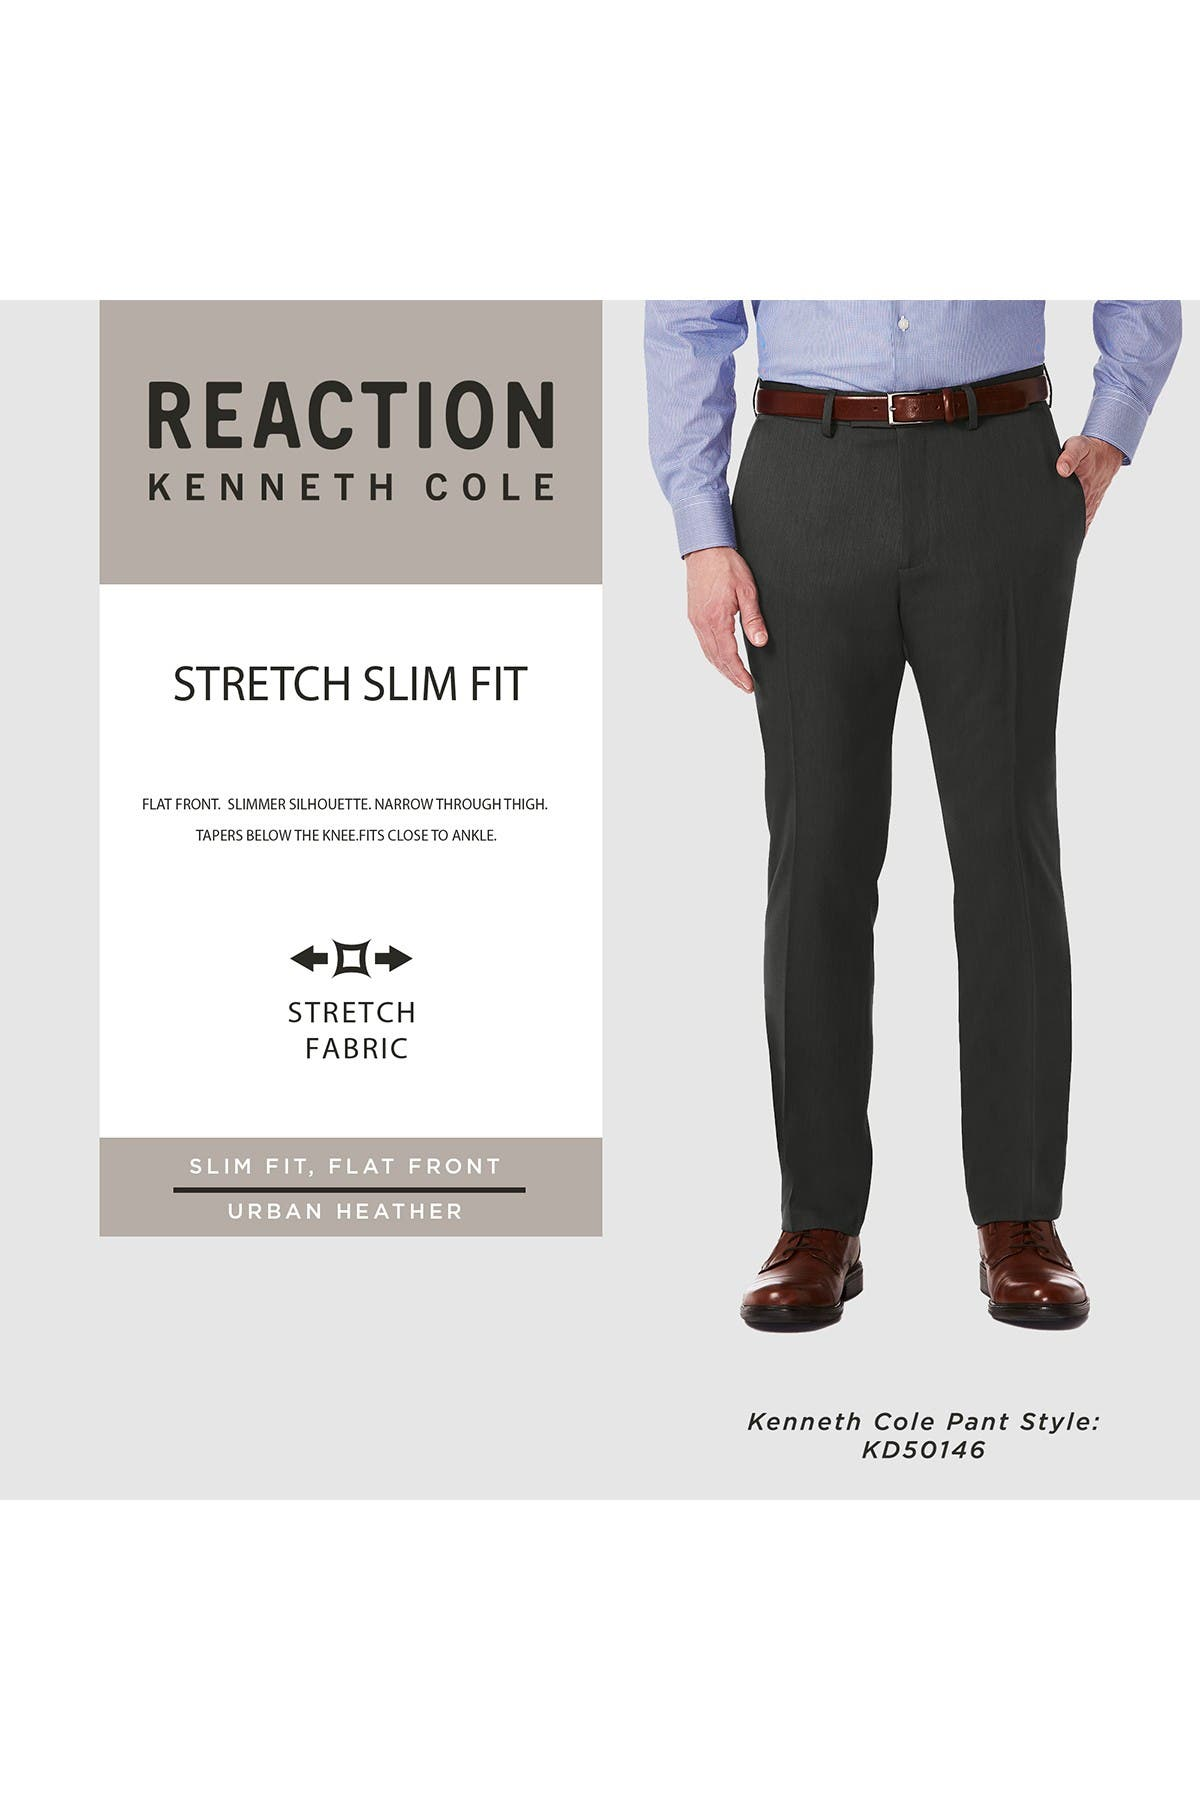 Kenneth Cole REACTION Mens Urban Heather Slim Fit Flat Front Dress Pant